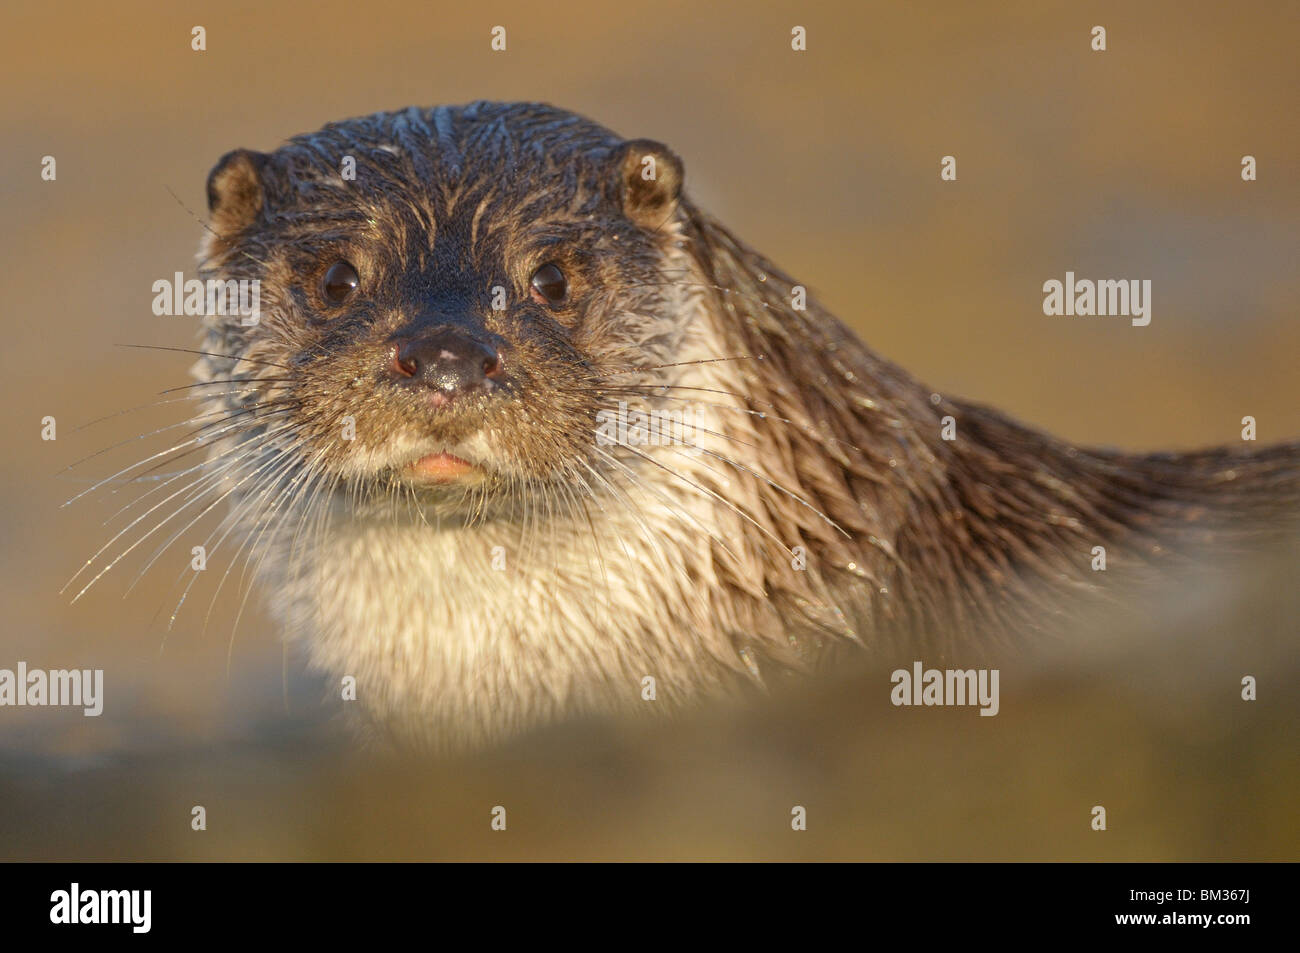 European River Otter (Lutra lutra). An adult pauses after emerging from the river, portrait. - Stock Image